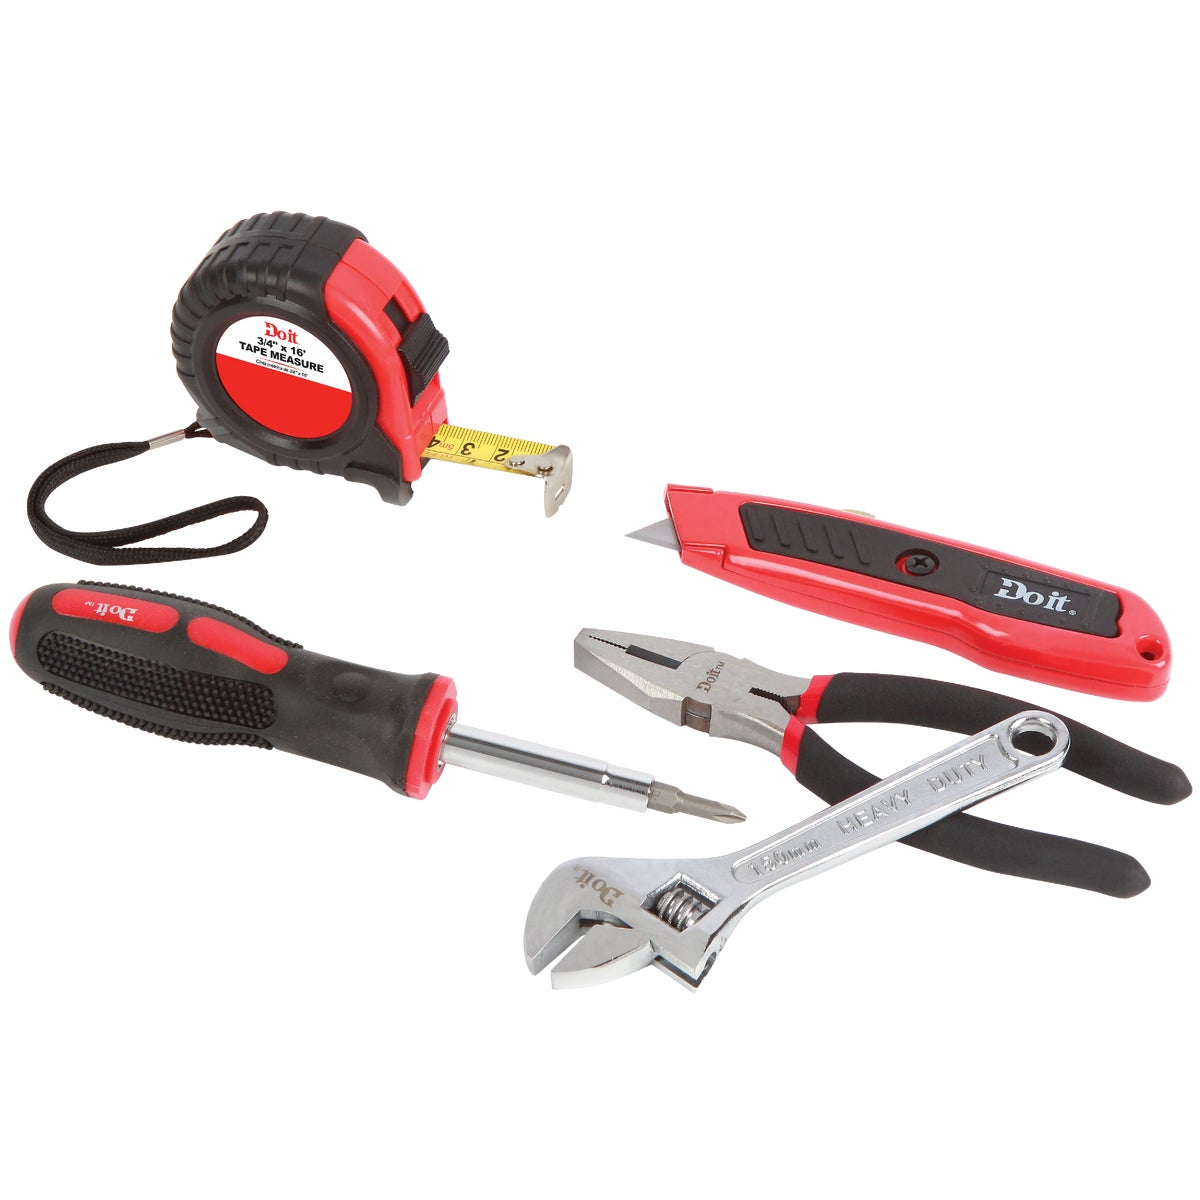 5PC HOME TOOL SET - 0346399 by Do it Best